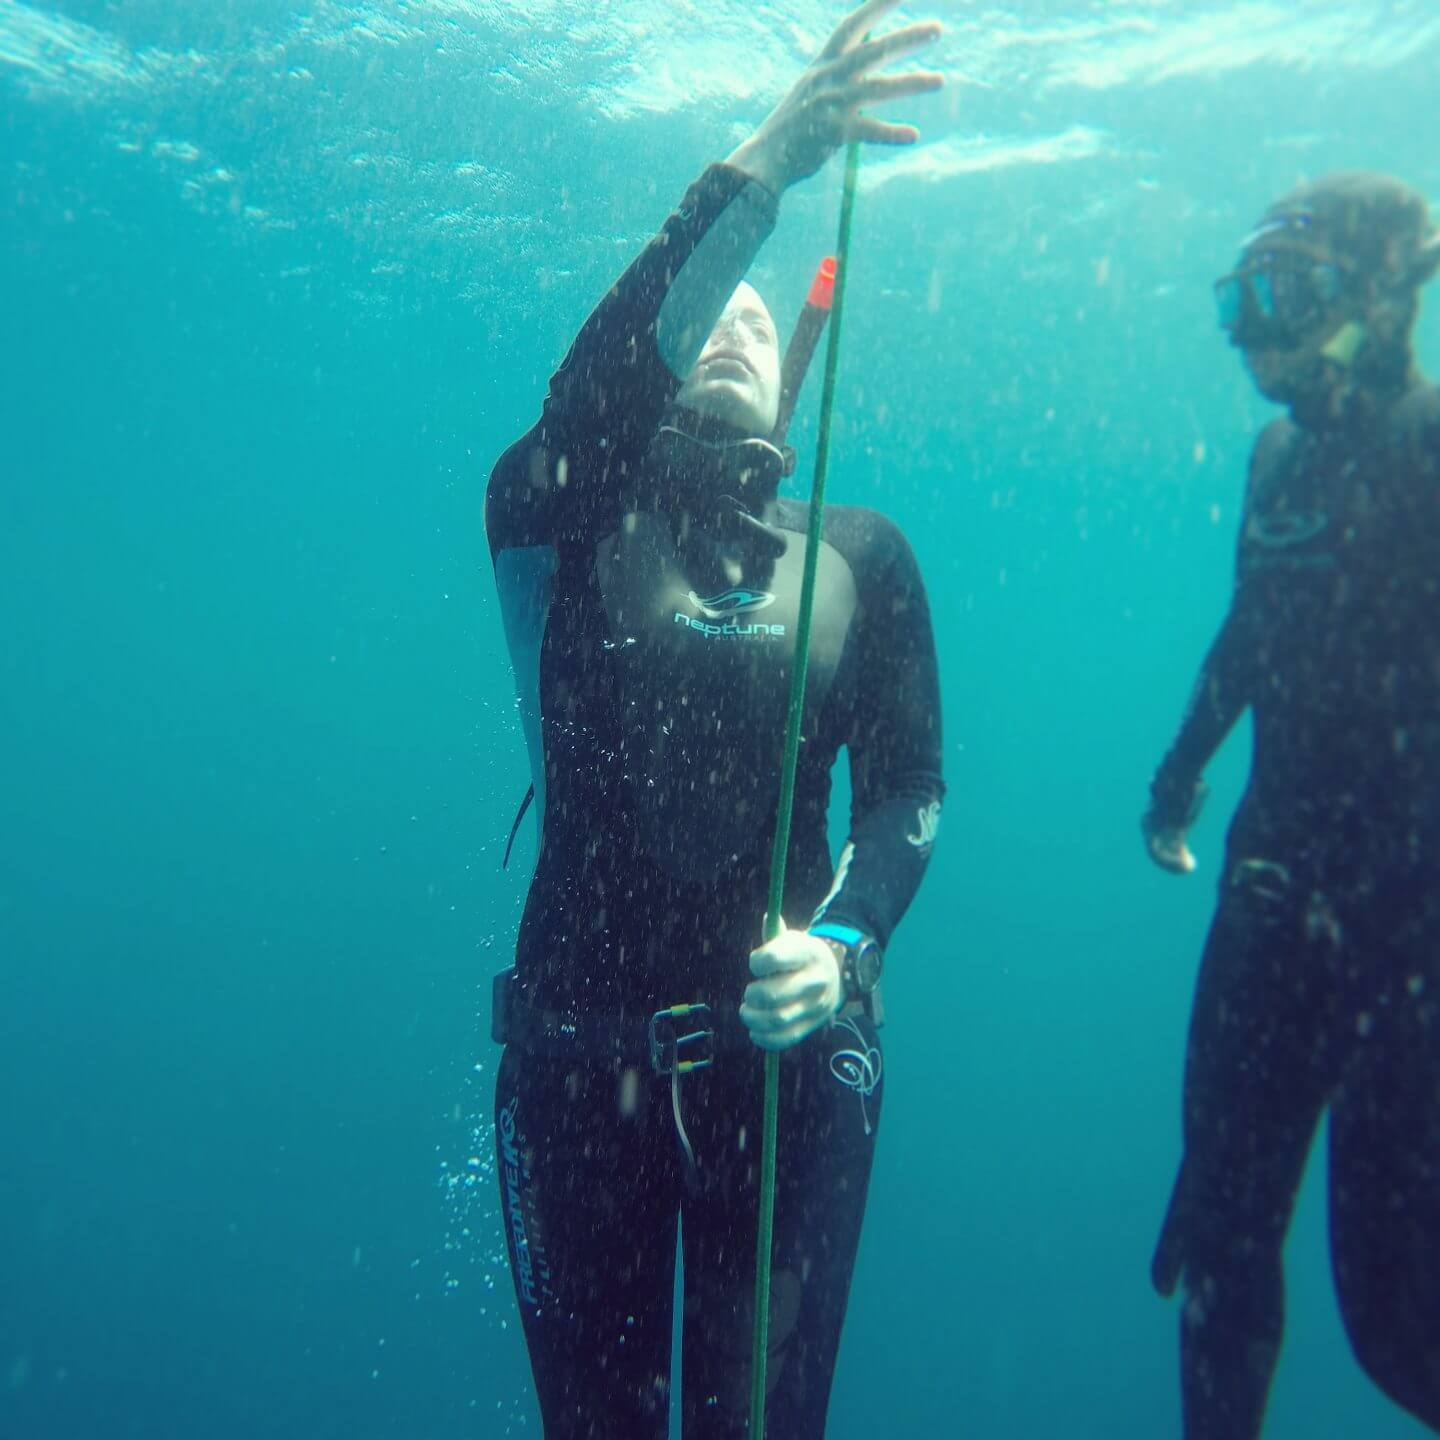 learning to freedive freediving training freediving course freediving techniques freediving certification